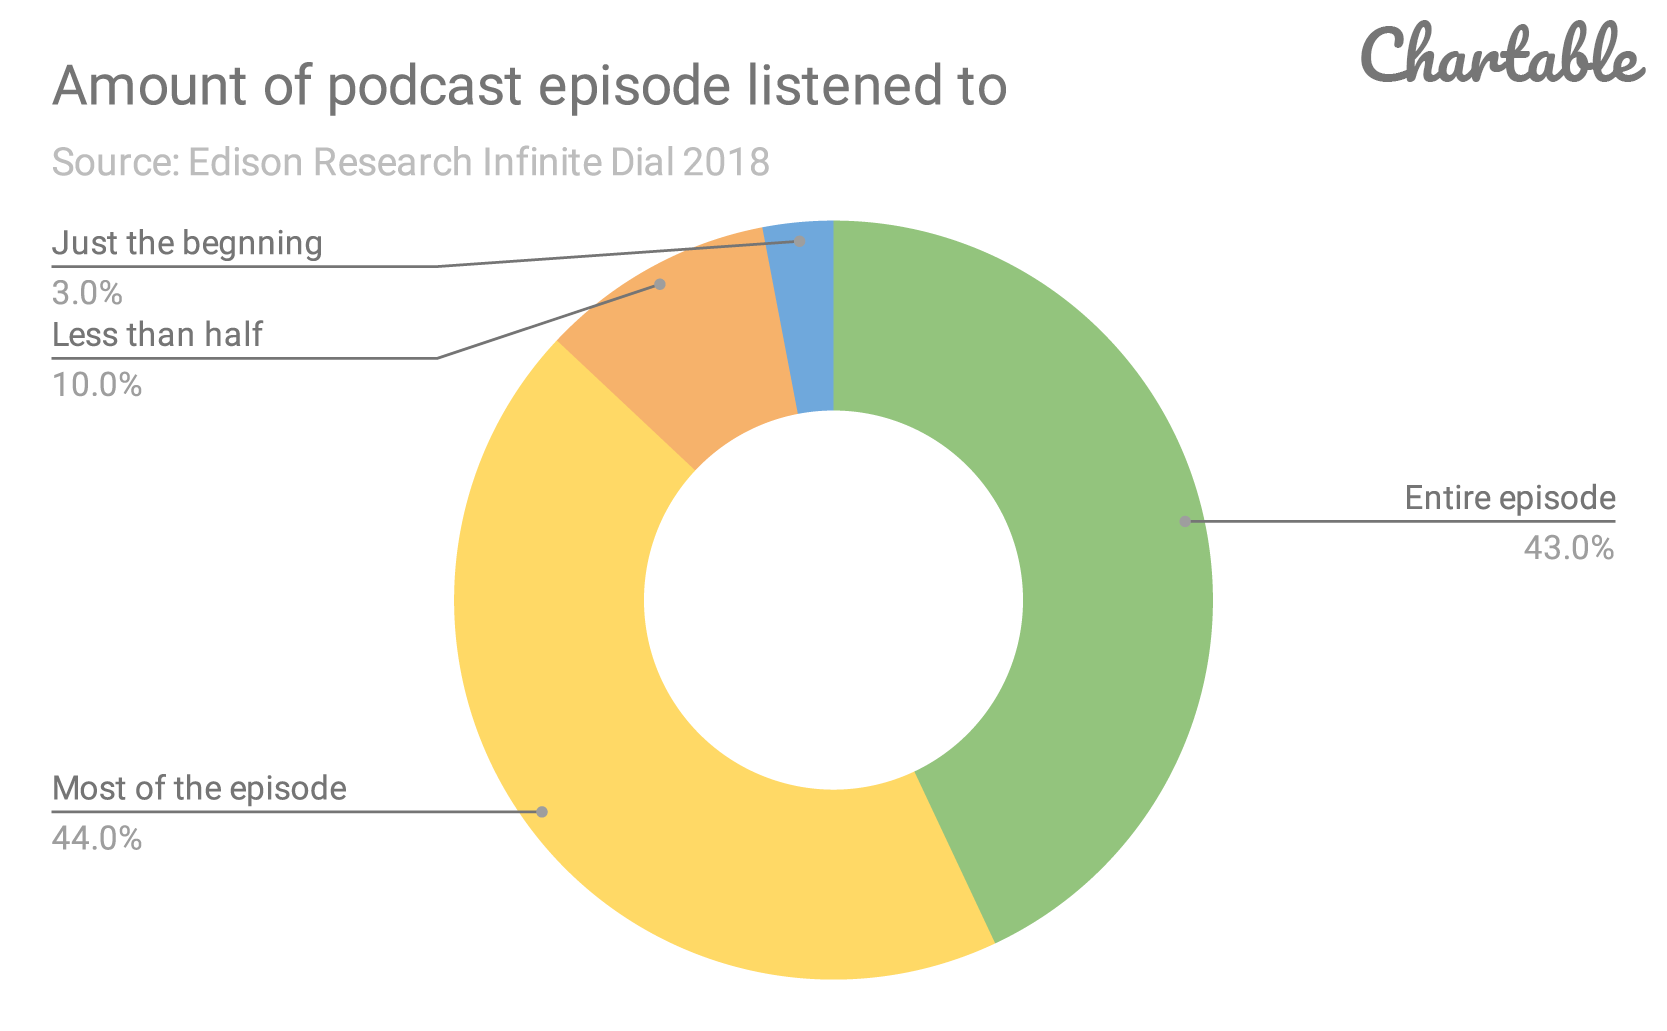 Amount-of-podcast-episode-listened-to...